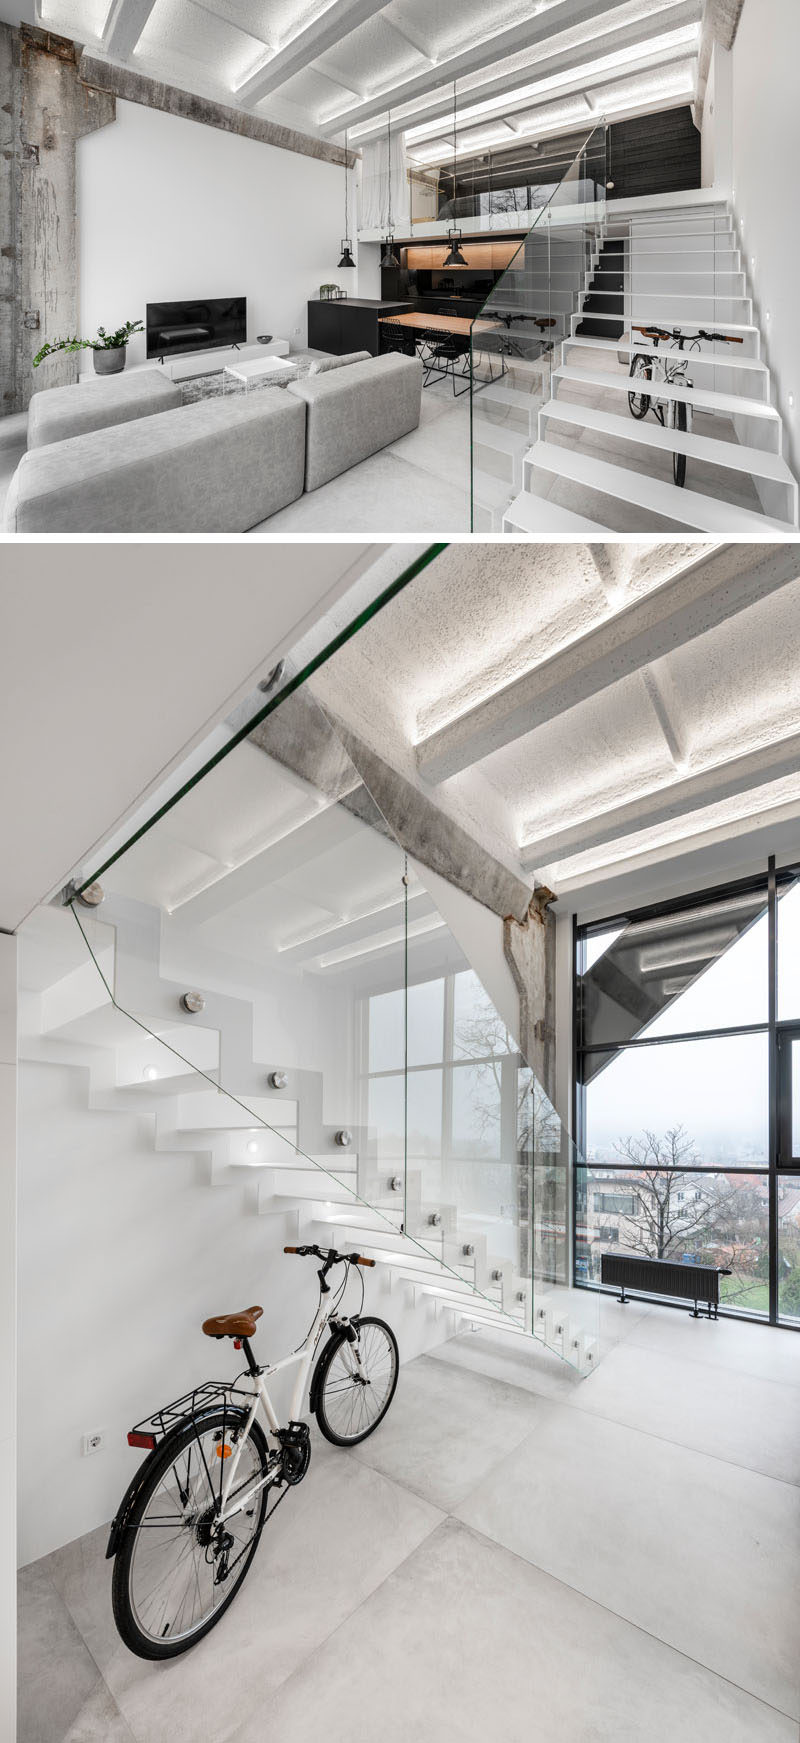 In this industrial modern apartment, minimalist white metal stairs with a glass handrail that lead up to the bedroom. #Stairs #MinimalistStairs